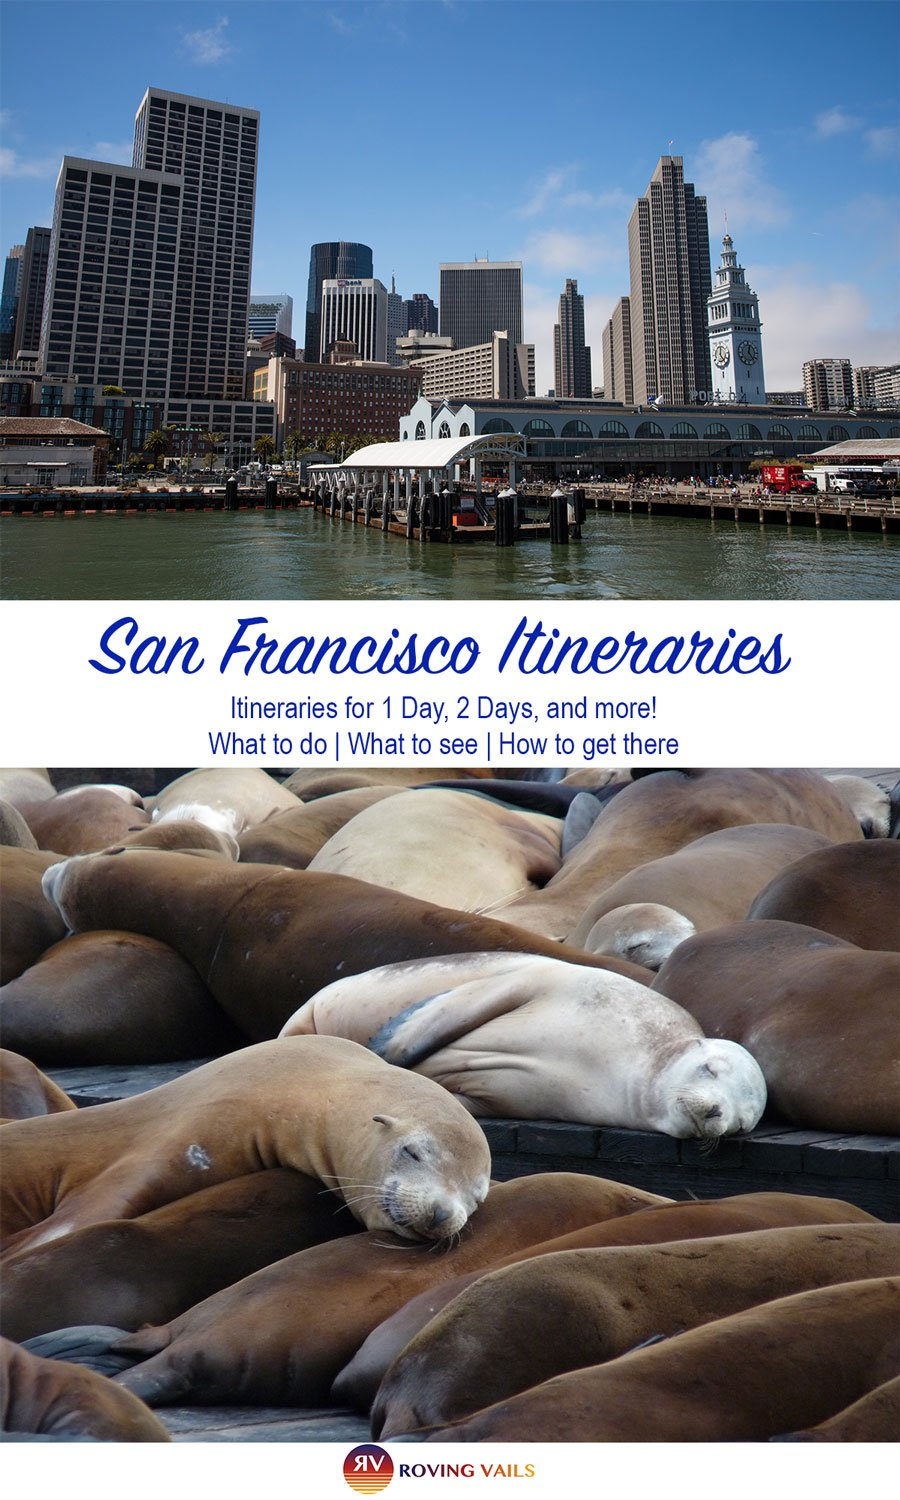 San Francisco - The Ultimate Itinerary